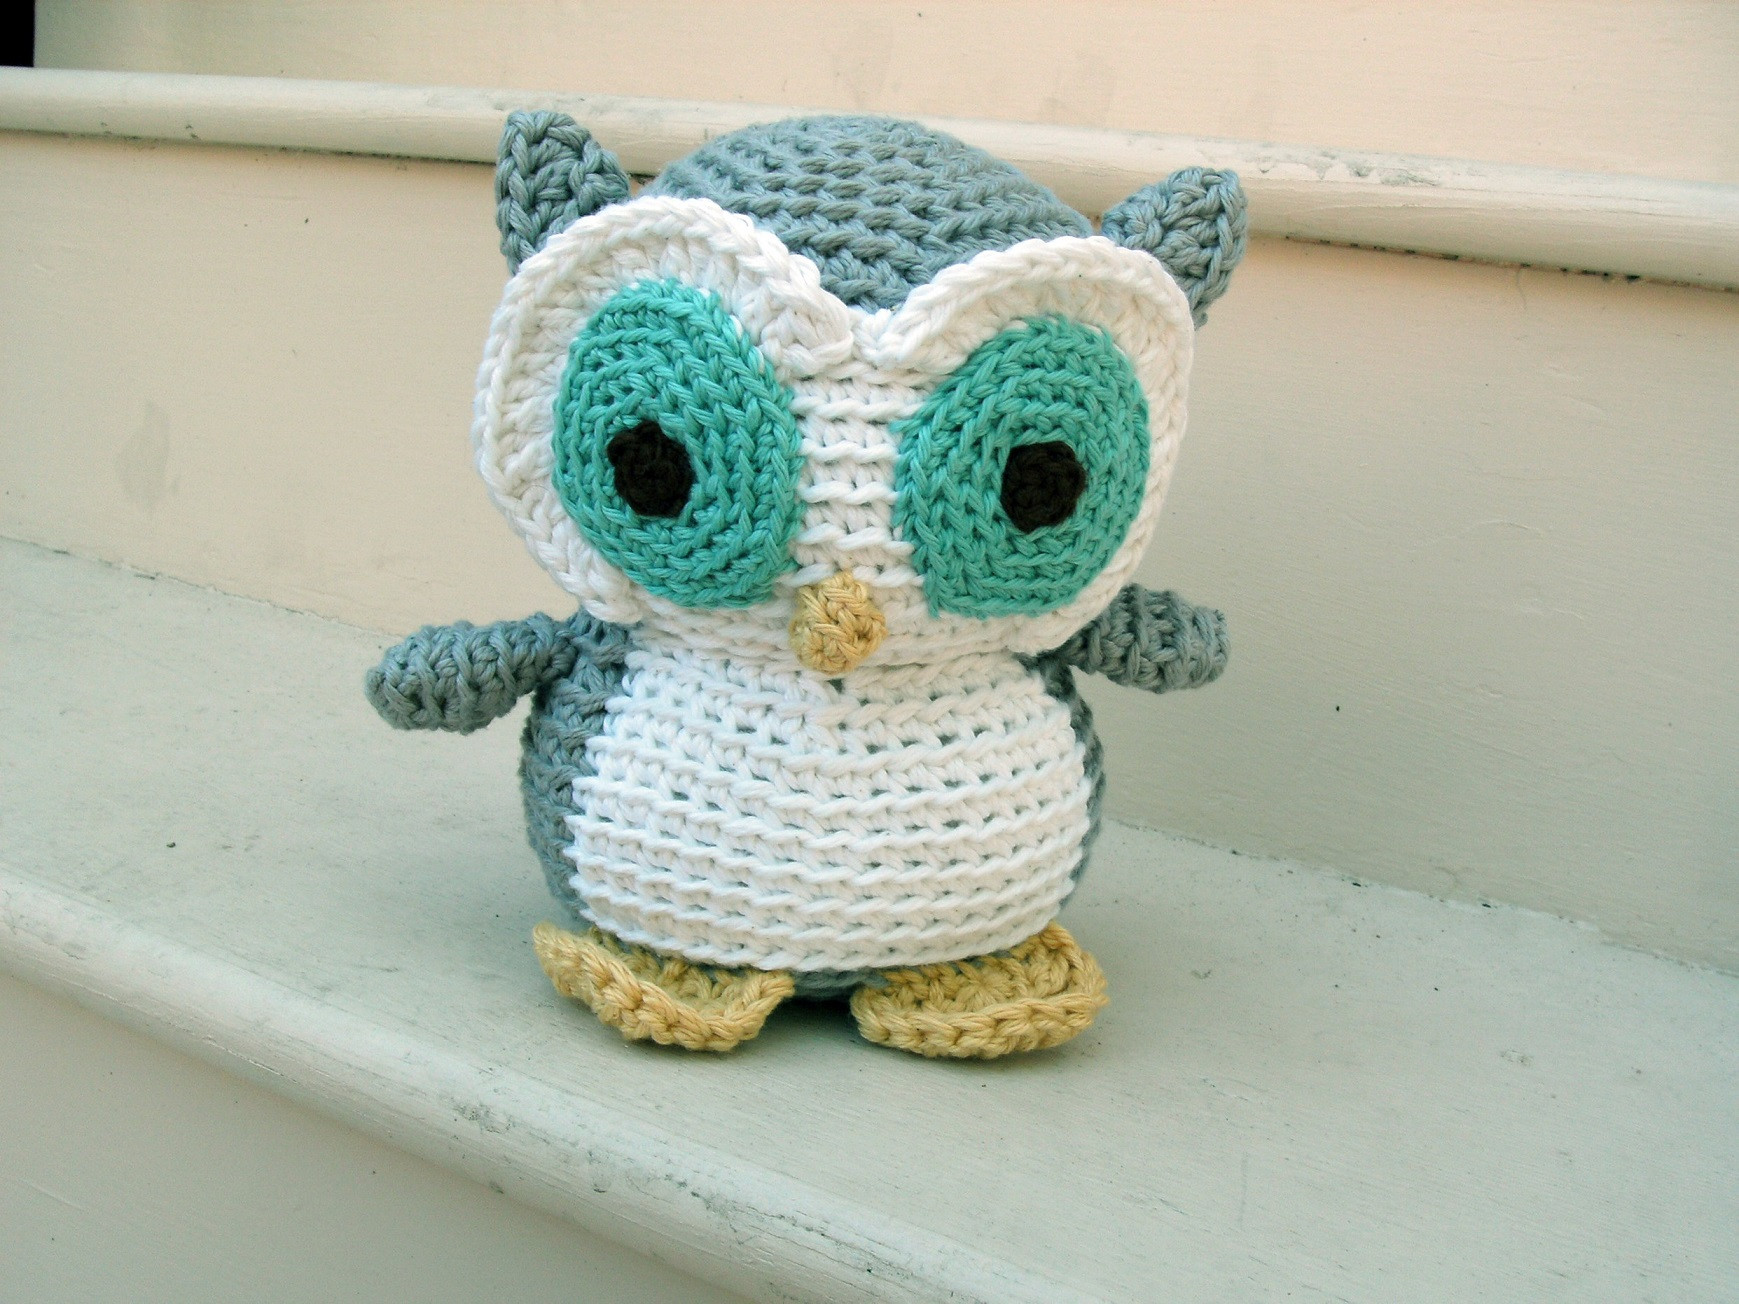 Crochet Stuffed Animals Unique Crochet Owl Pattern for Adorable and Cute Design Of Incredible 42 Images Crochet Stuffed Animals